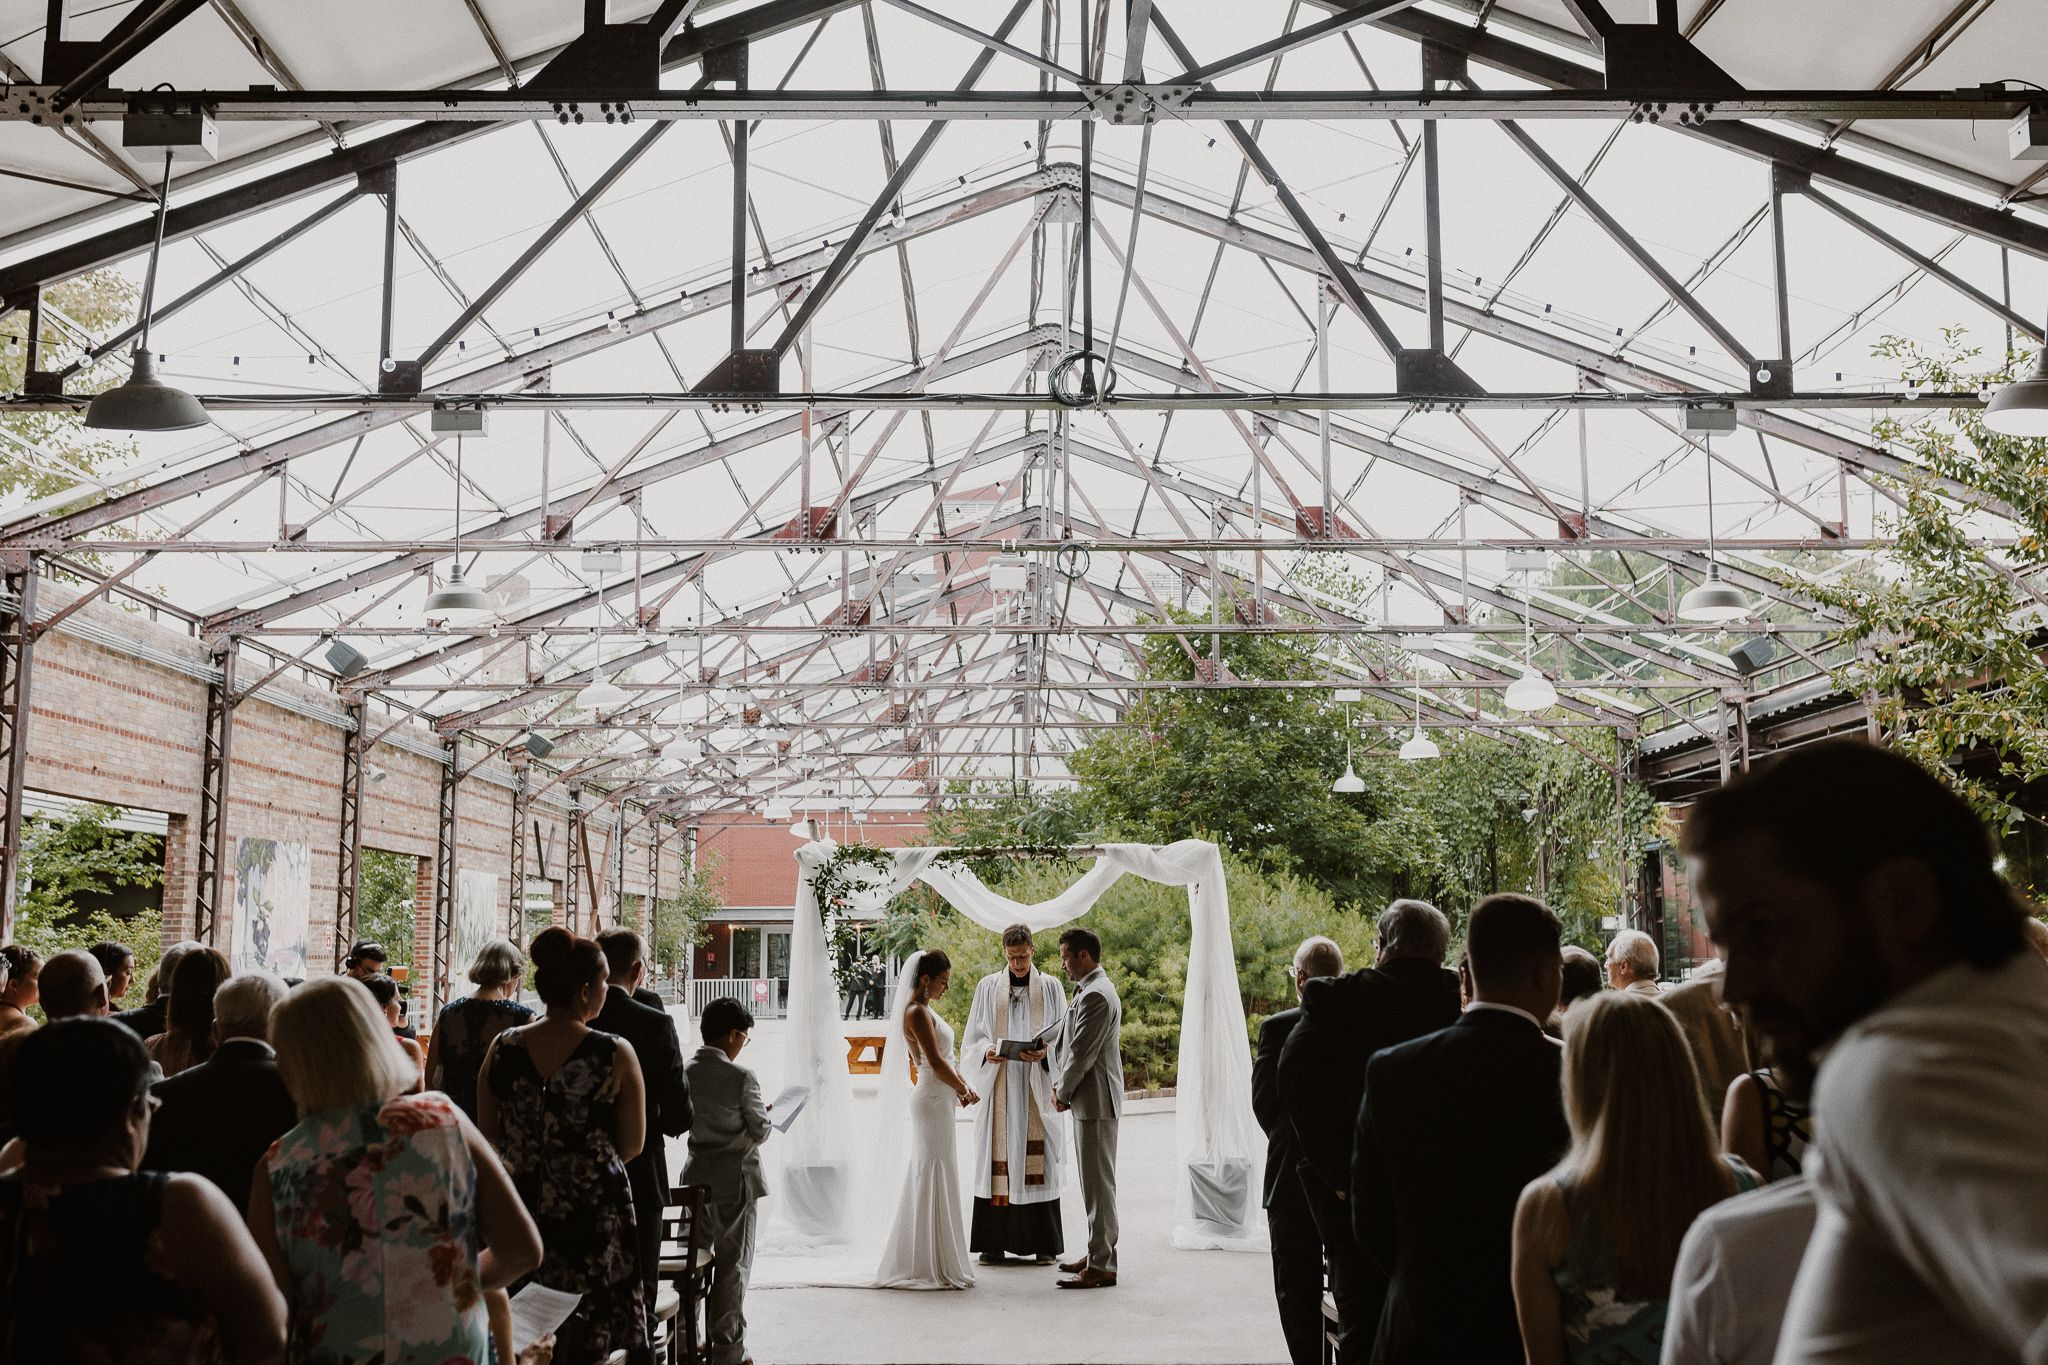 Bride and groom ceremony photo at Evergreen Brick Works looking at each other with priest and guests present.